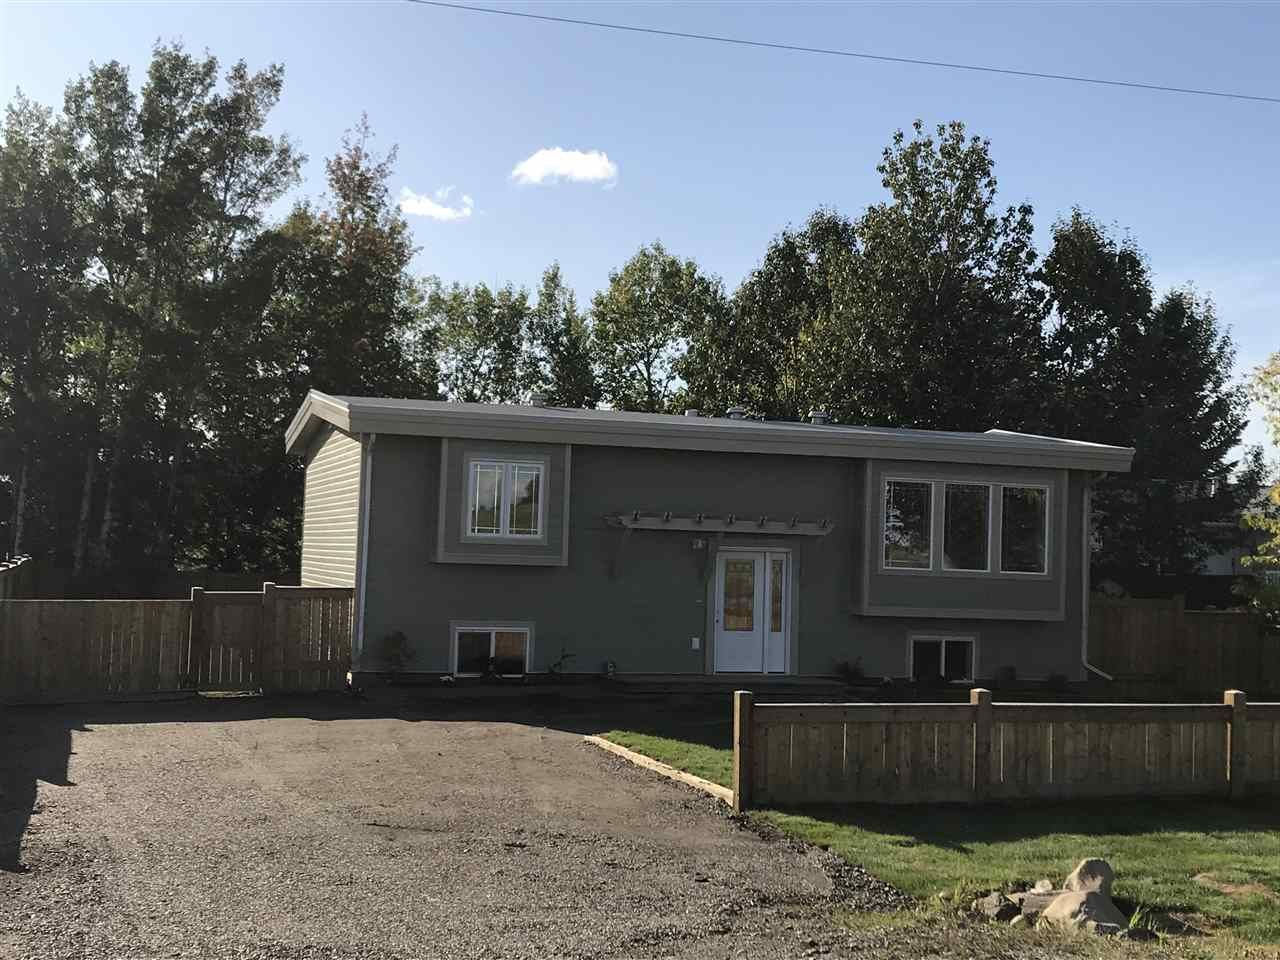 Main Photo: 10050 257 ROAD in : Fort St. John - Rural W 100th House for sale : MLS®# R2405365